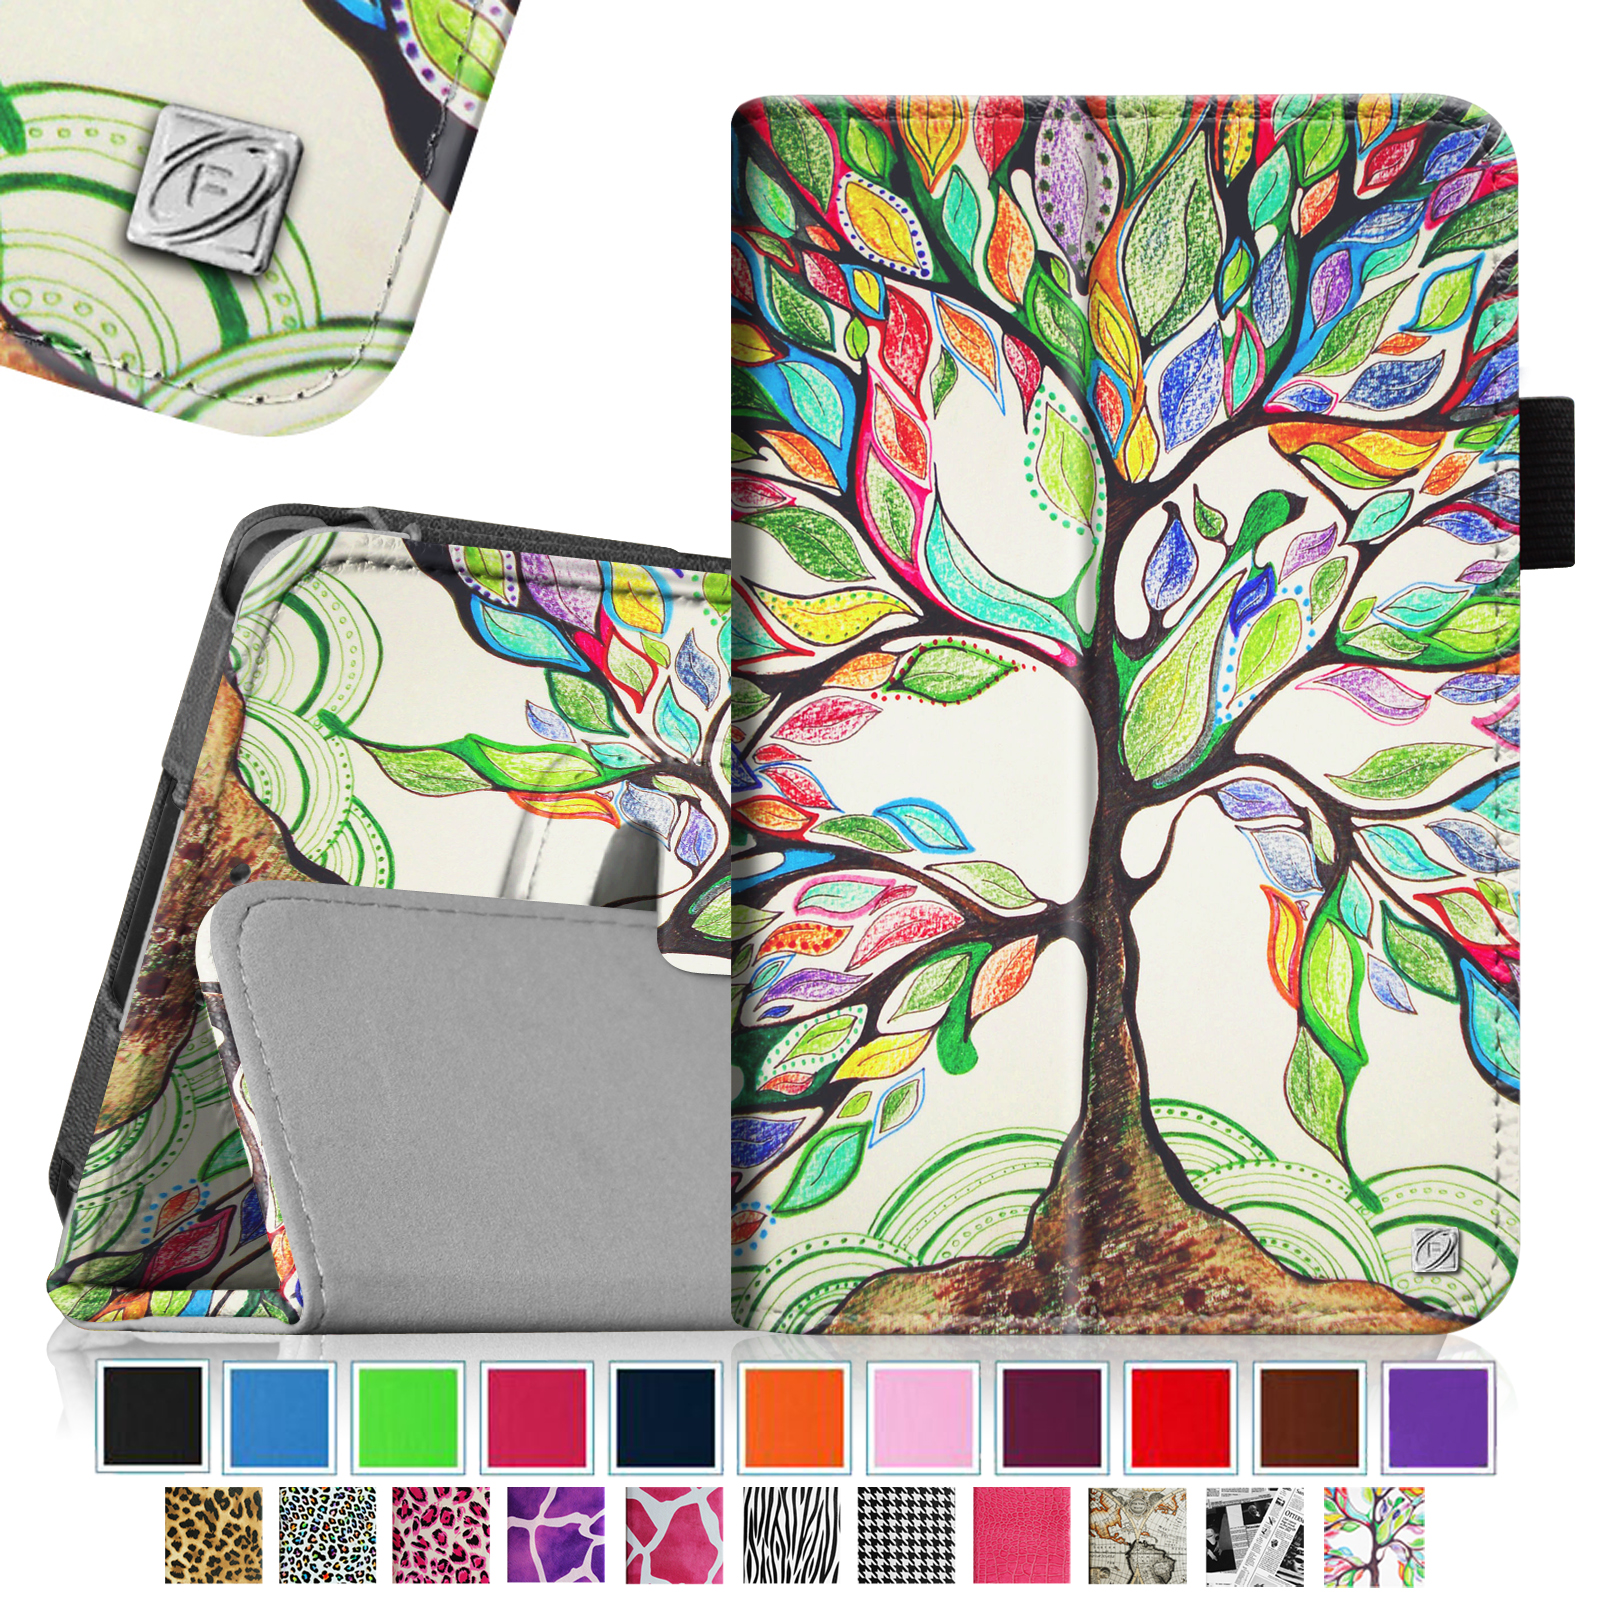 Fintie Kindle Fire HD 6 Tablet (2014 Oct Release) Case - Slim Fit Leather Stand Cover with Sleep/Wake Feature, Love Tree